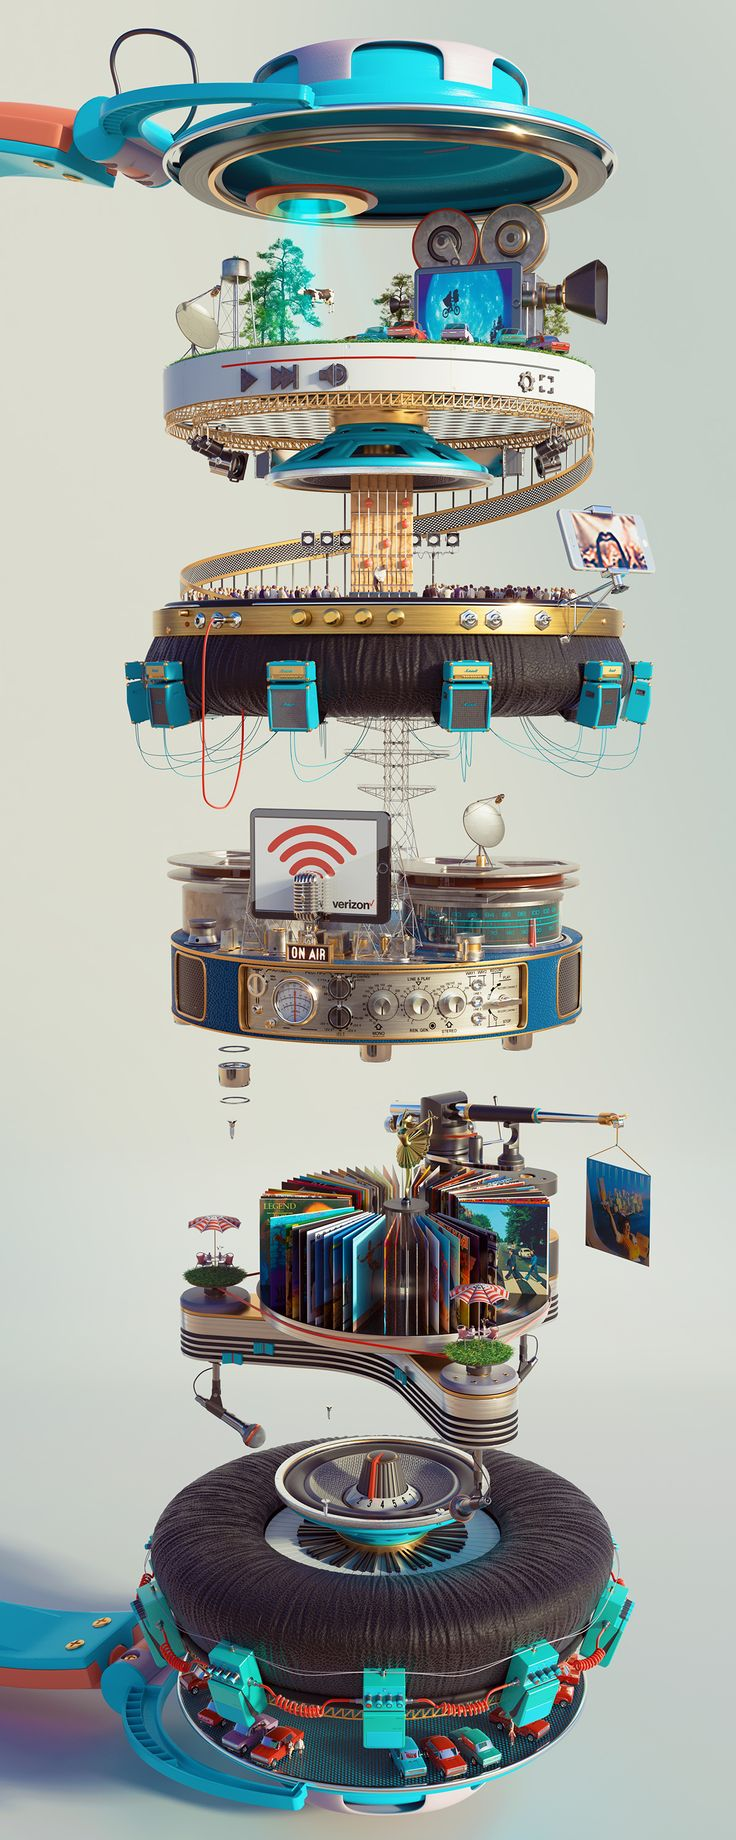 Verizon on Behance